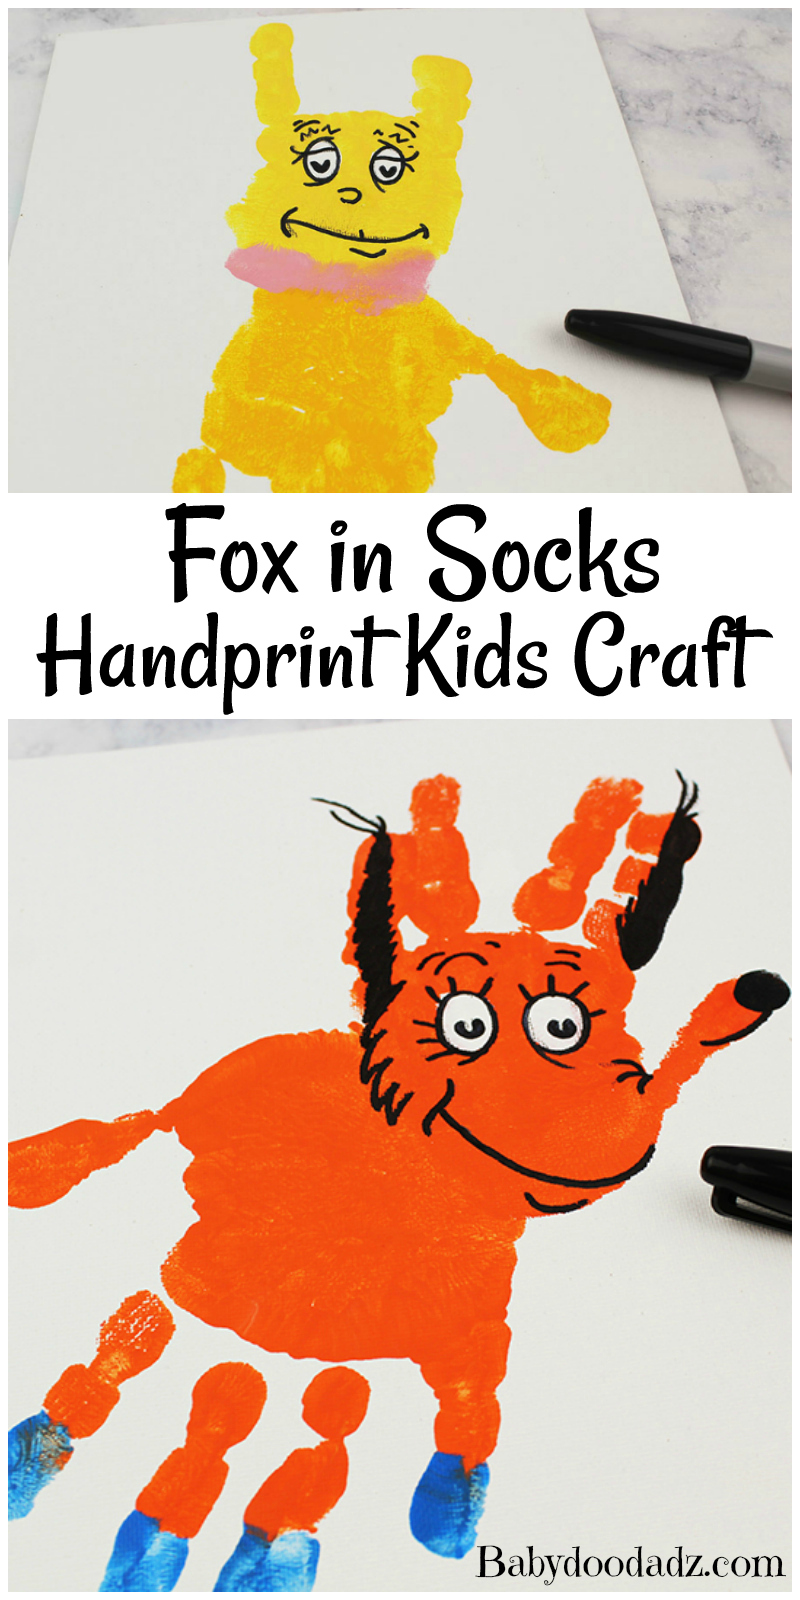 Dr Seuss Handprint Fox in Socks Craft